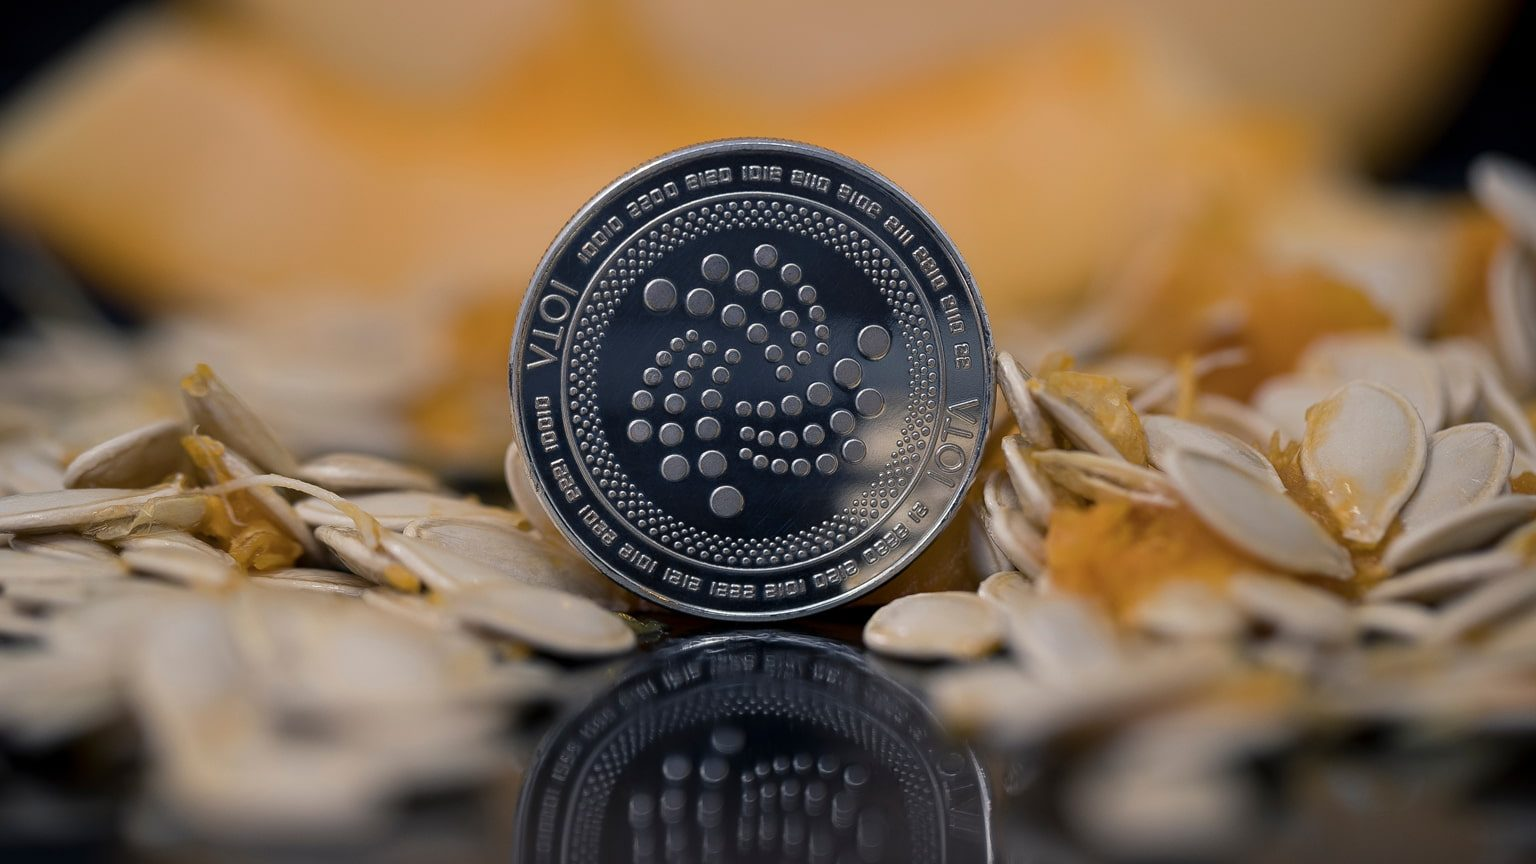 Iota cryptocurrency physical coin